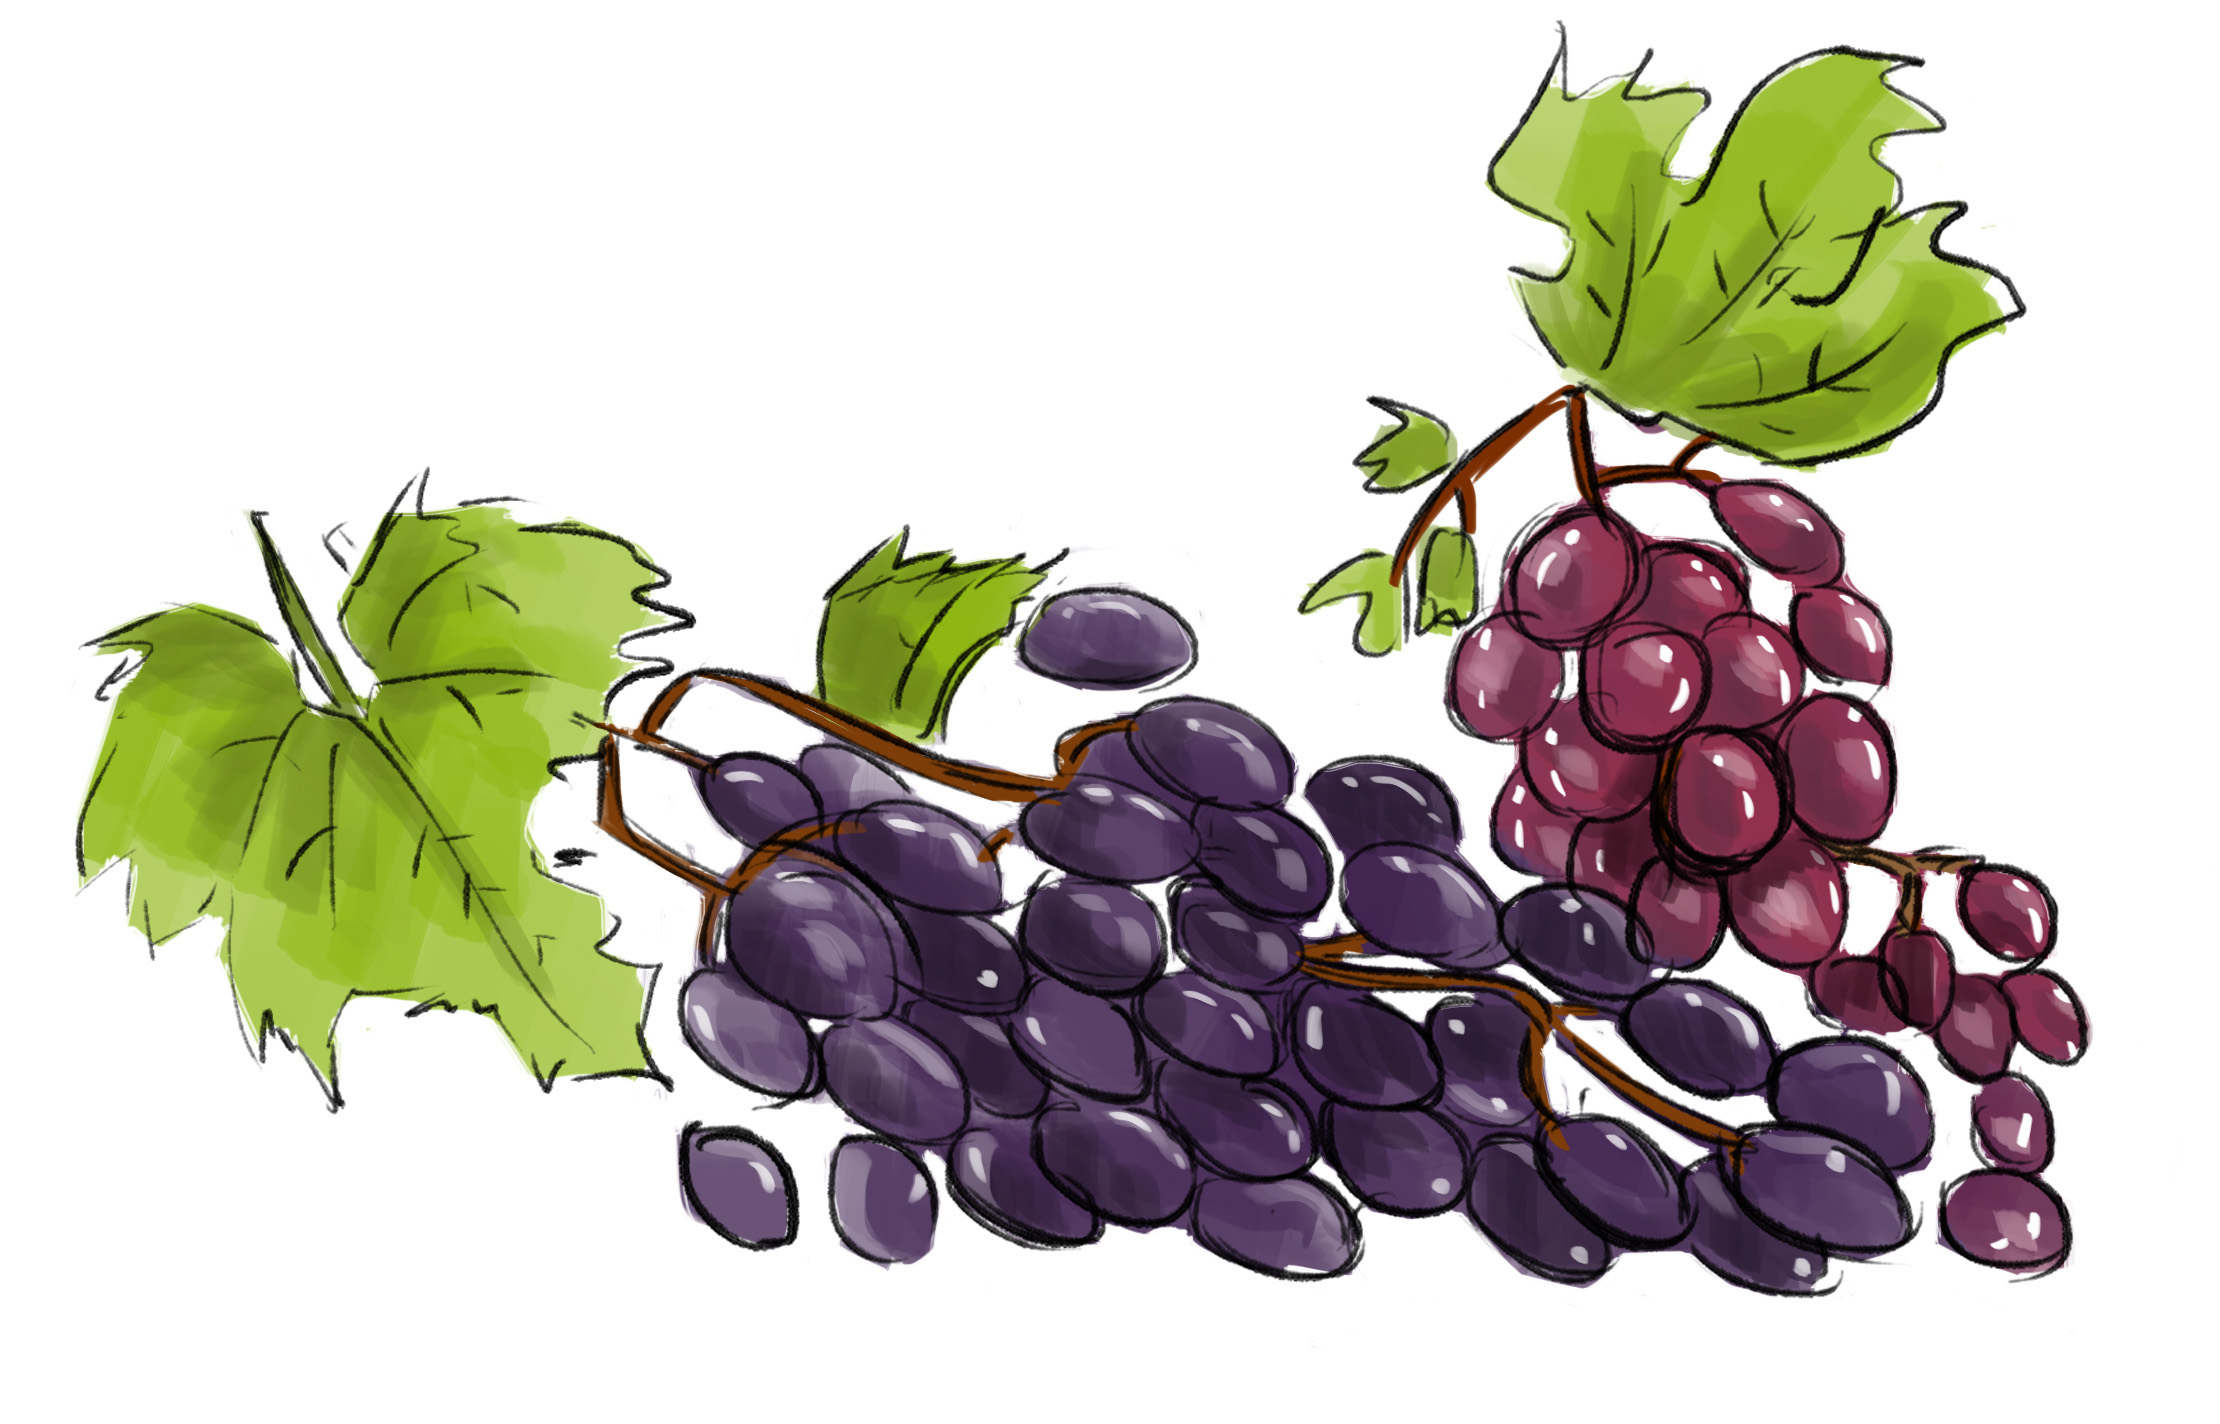 Grapes - vitsmin C, antioxidants, selenium